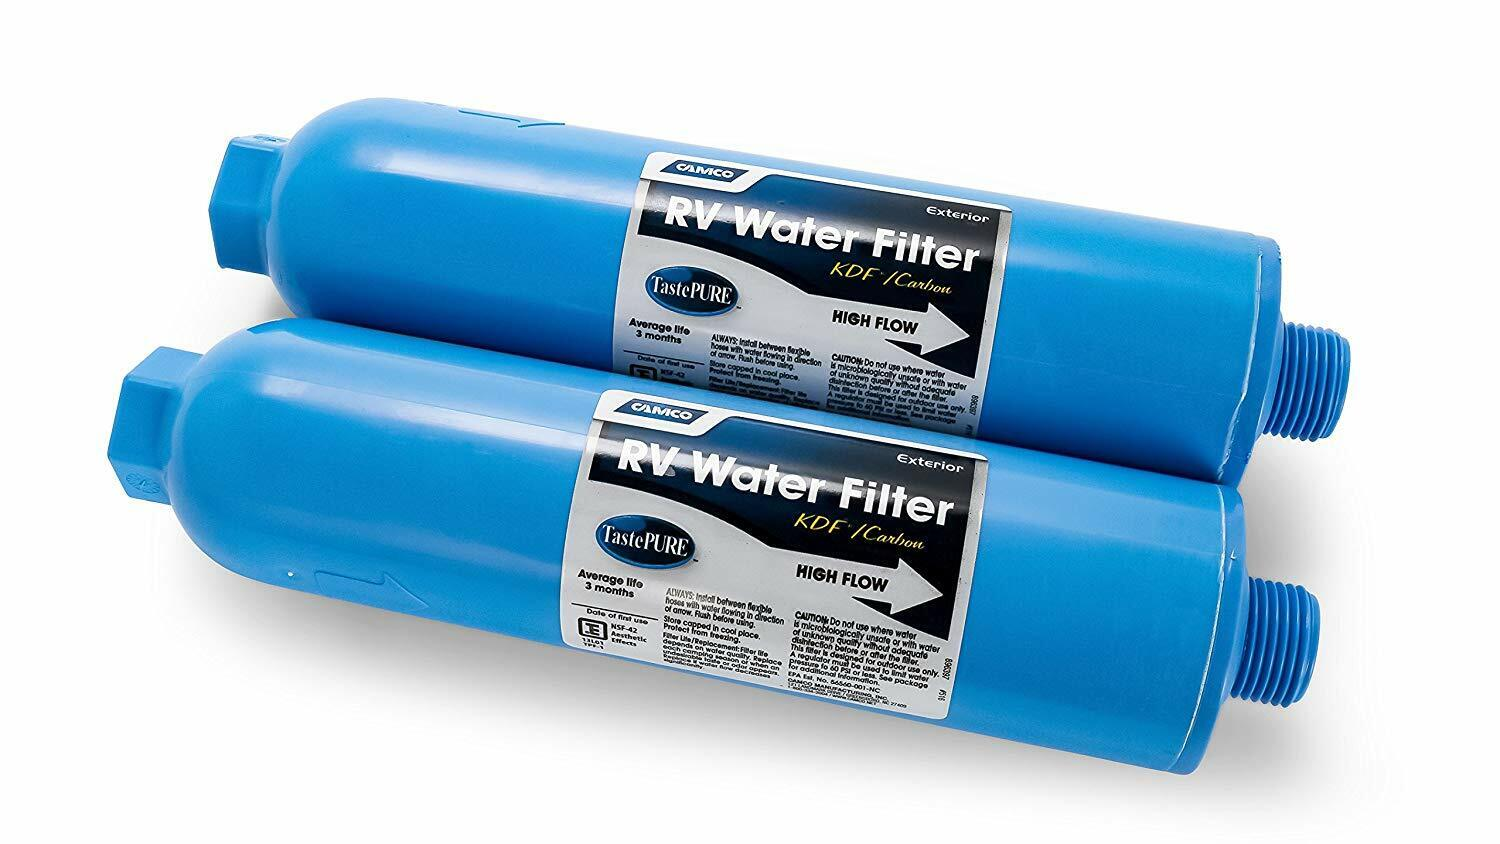 rv water filter inline 2 pack camping